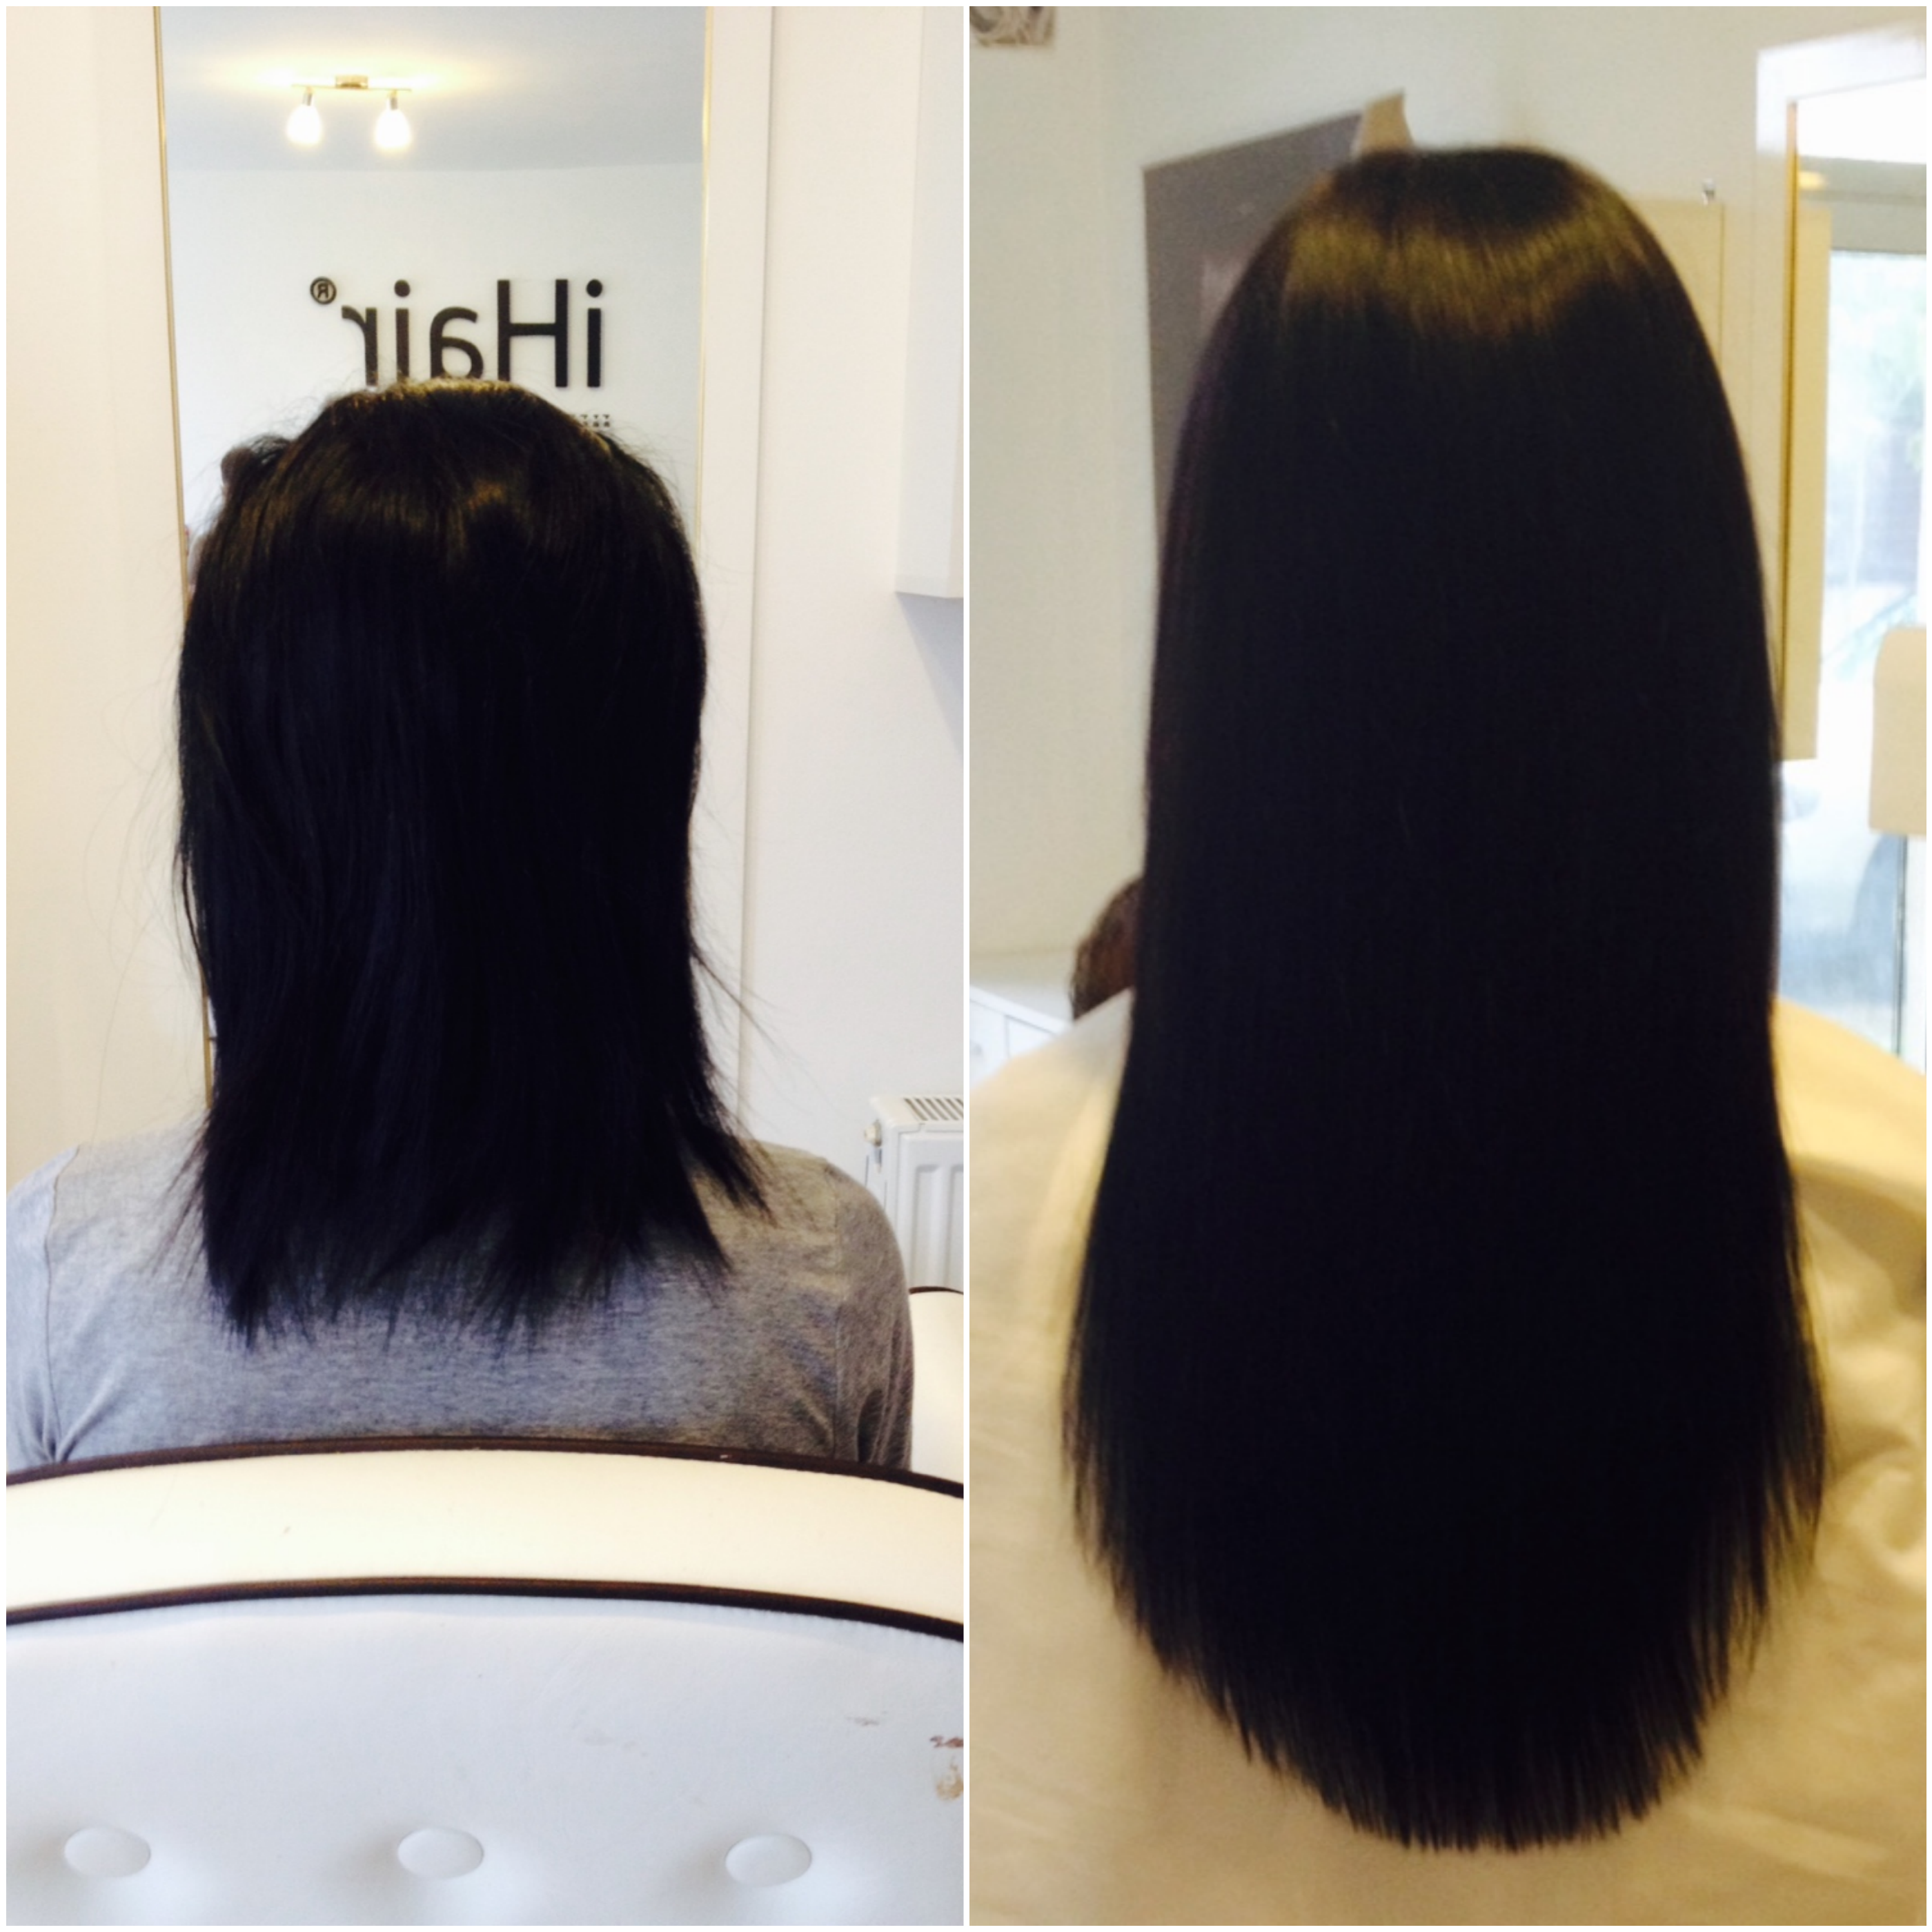 50 Cm 20 Inches Hairextensions With Natural Brown Color From The